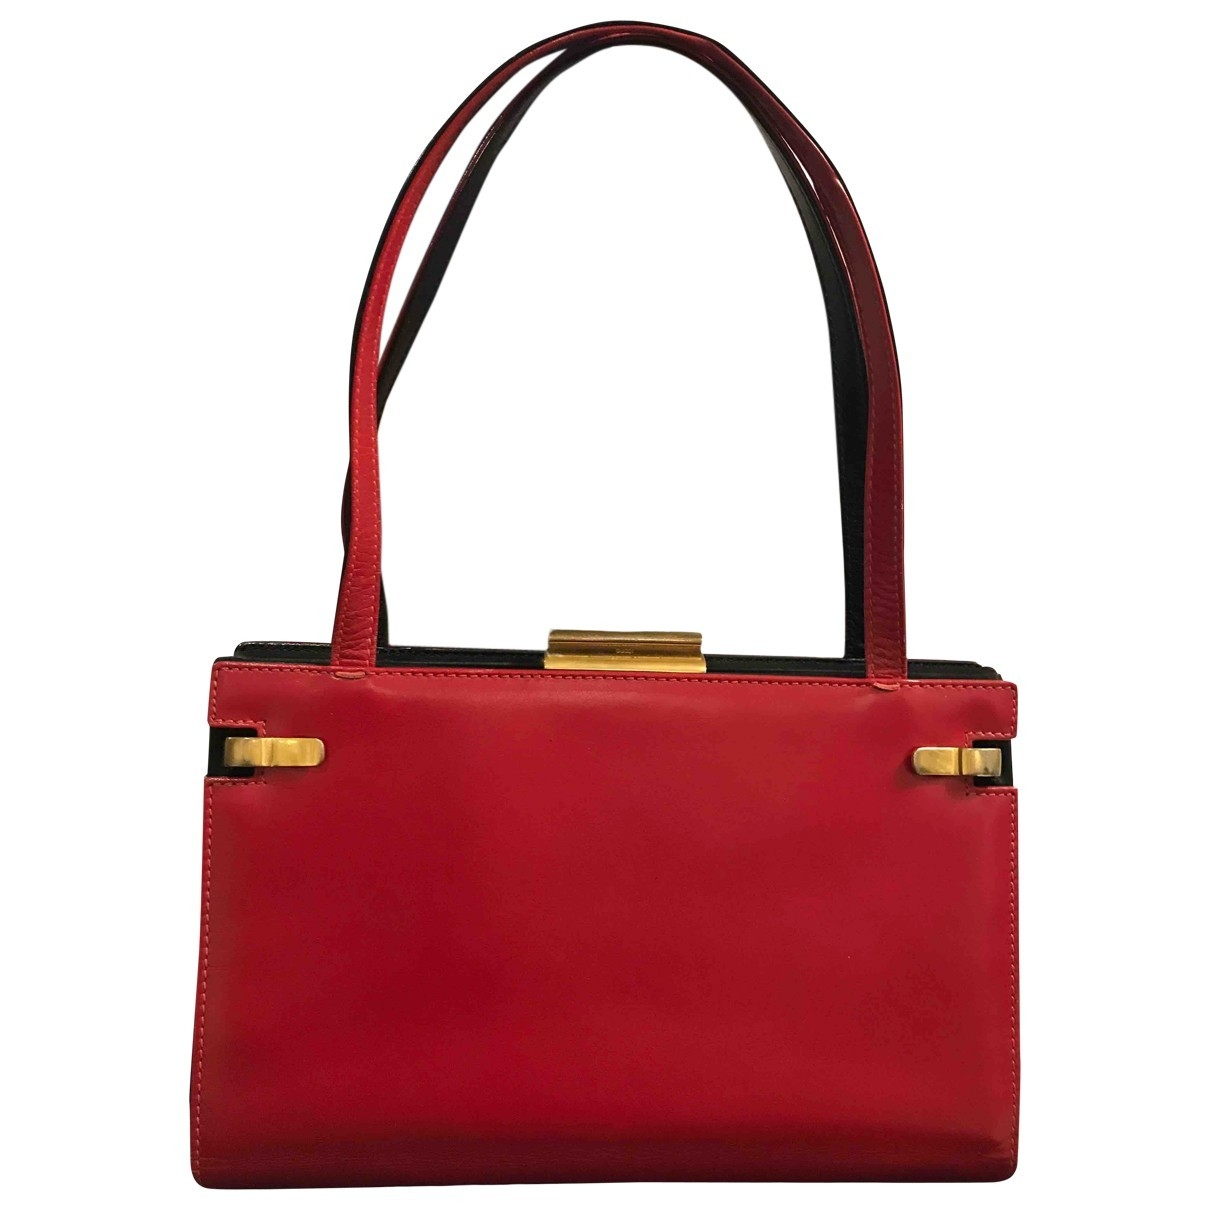 Gucci 1955 Red Leather handbag for Women \N